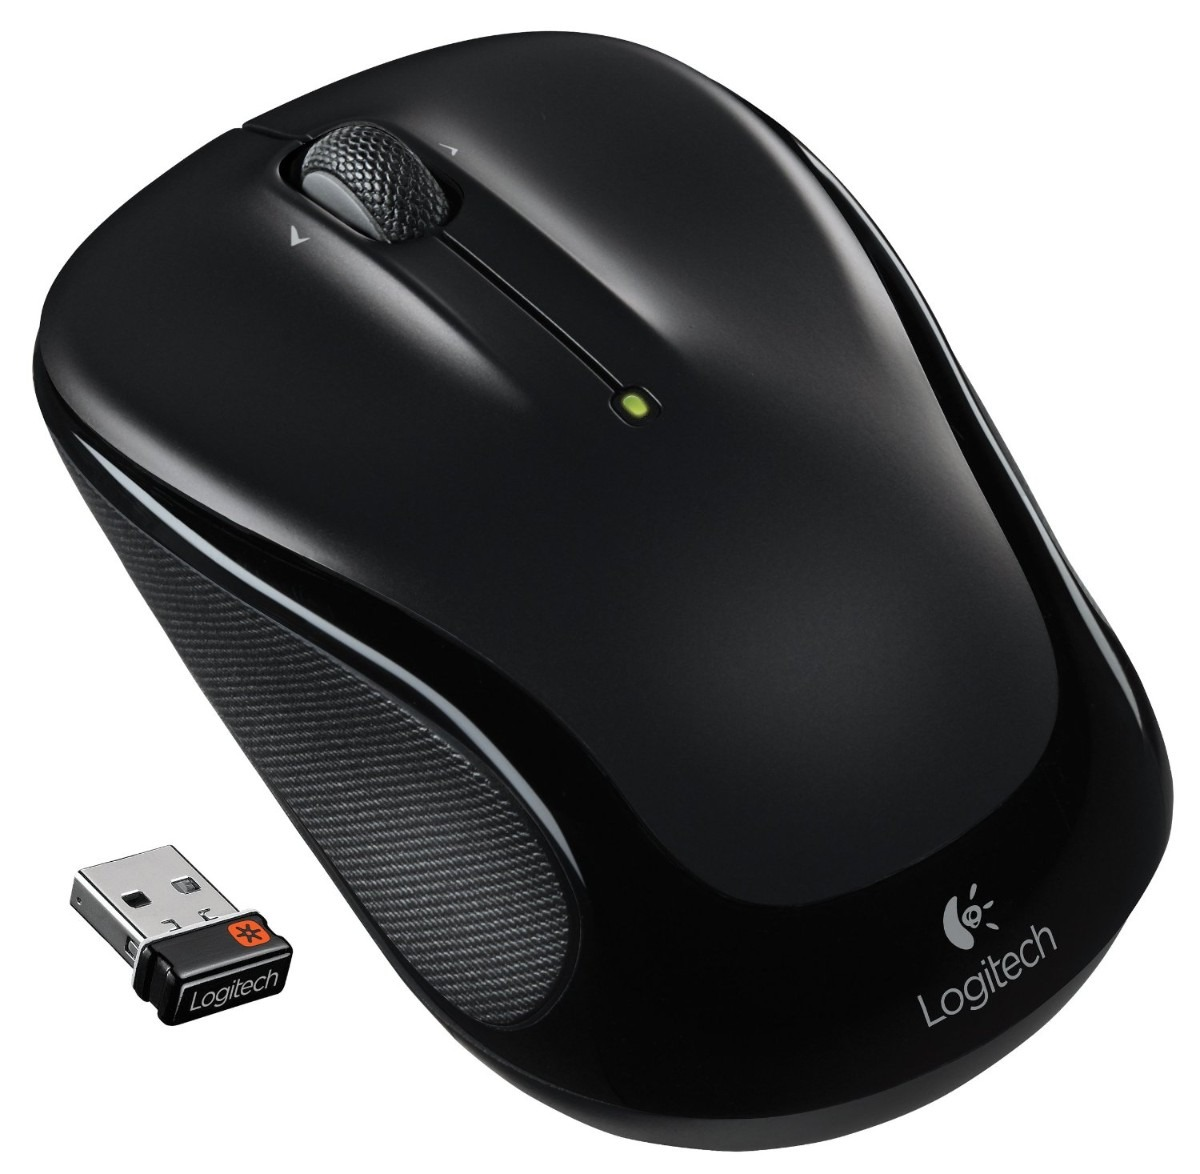 Come collegare / installare un mouse wireless Genius | Hp sul mio PC? 1